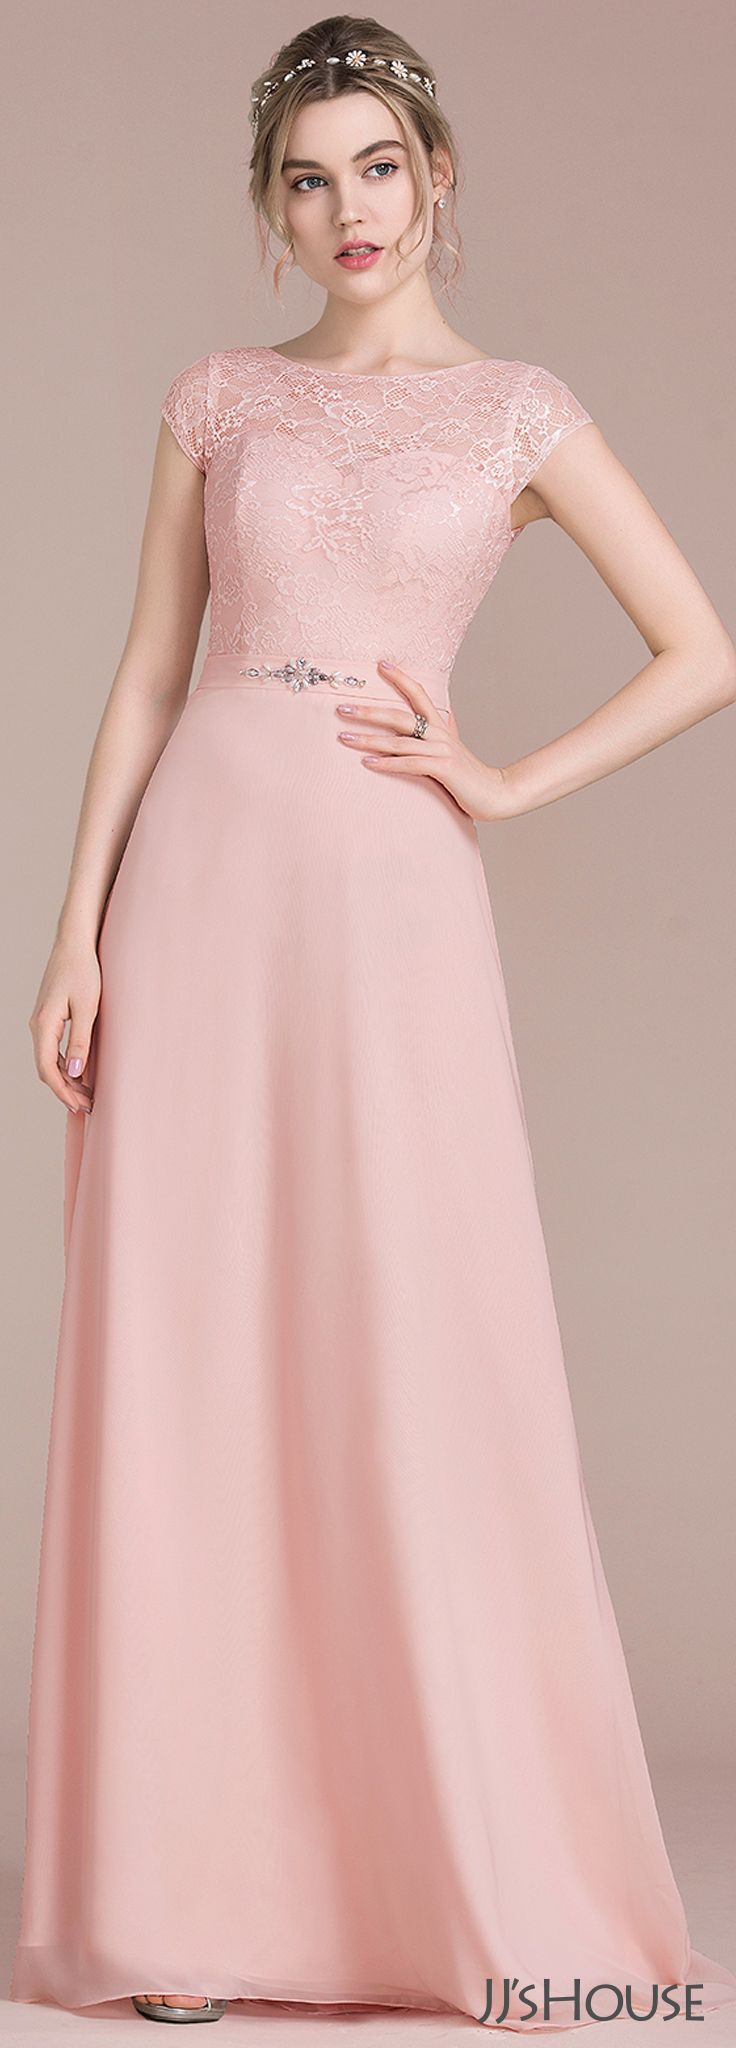 4491 best Bridesmaids/ Flower girl/other bridal party dresses images ...